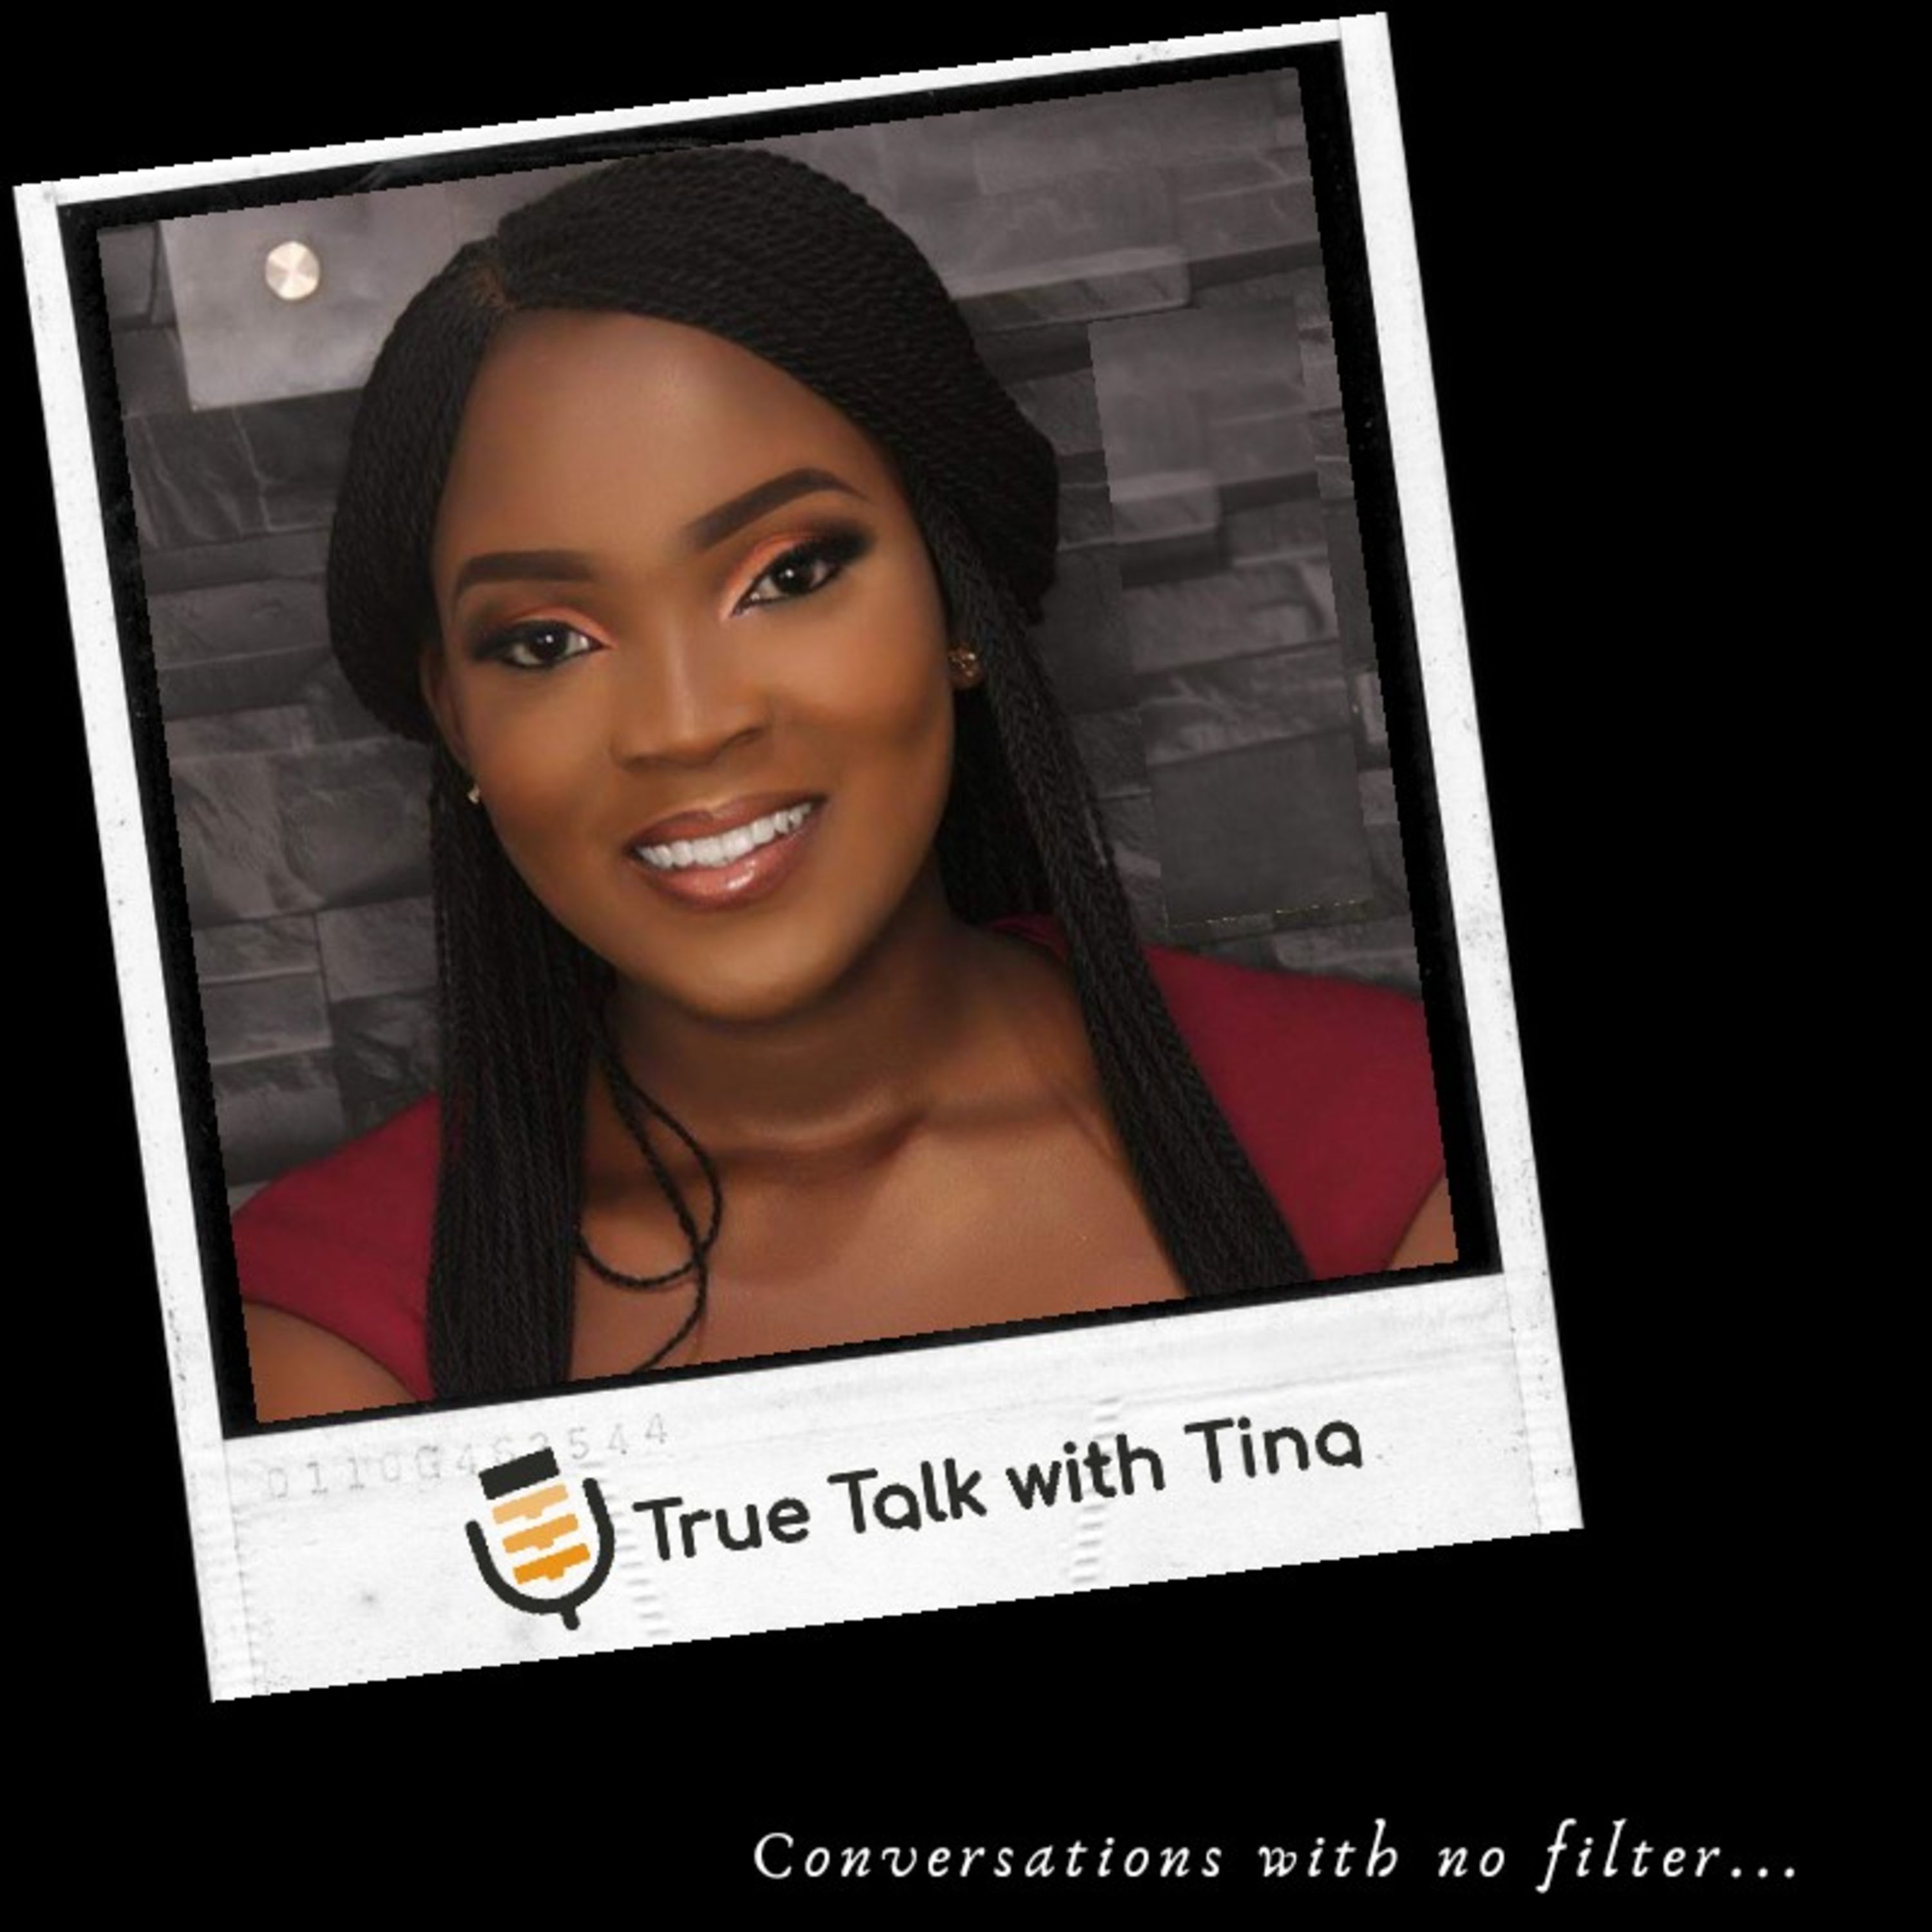 True Talk with Tina on Jamit